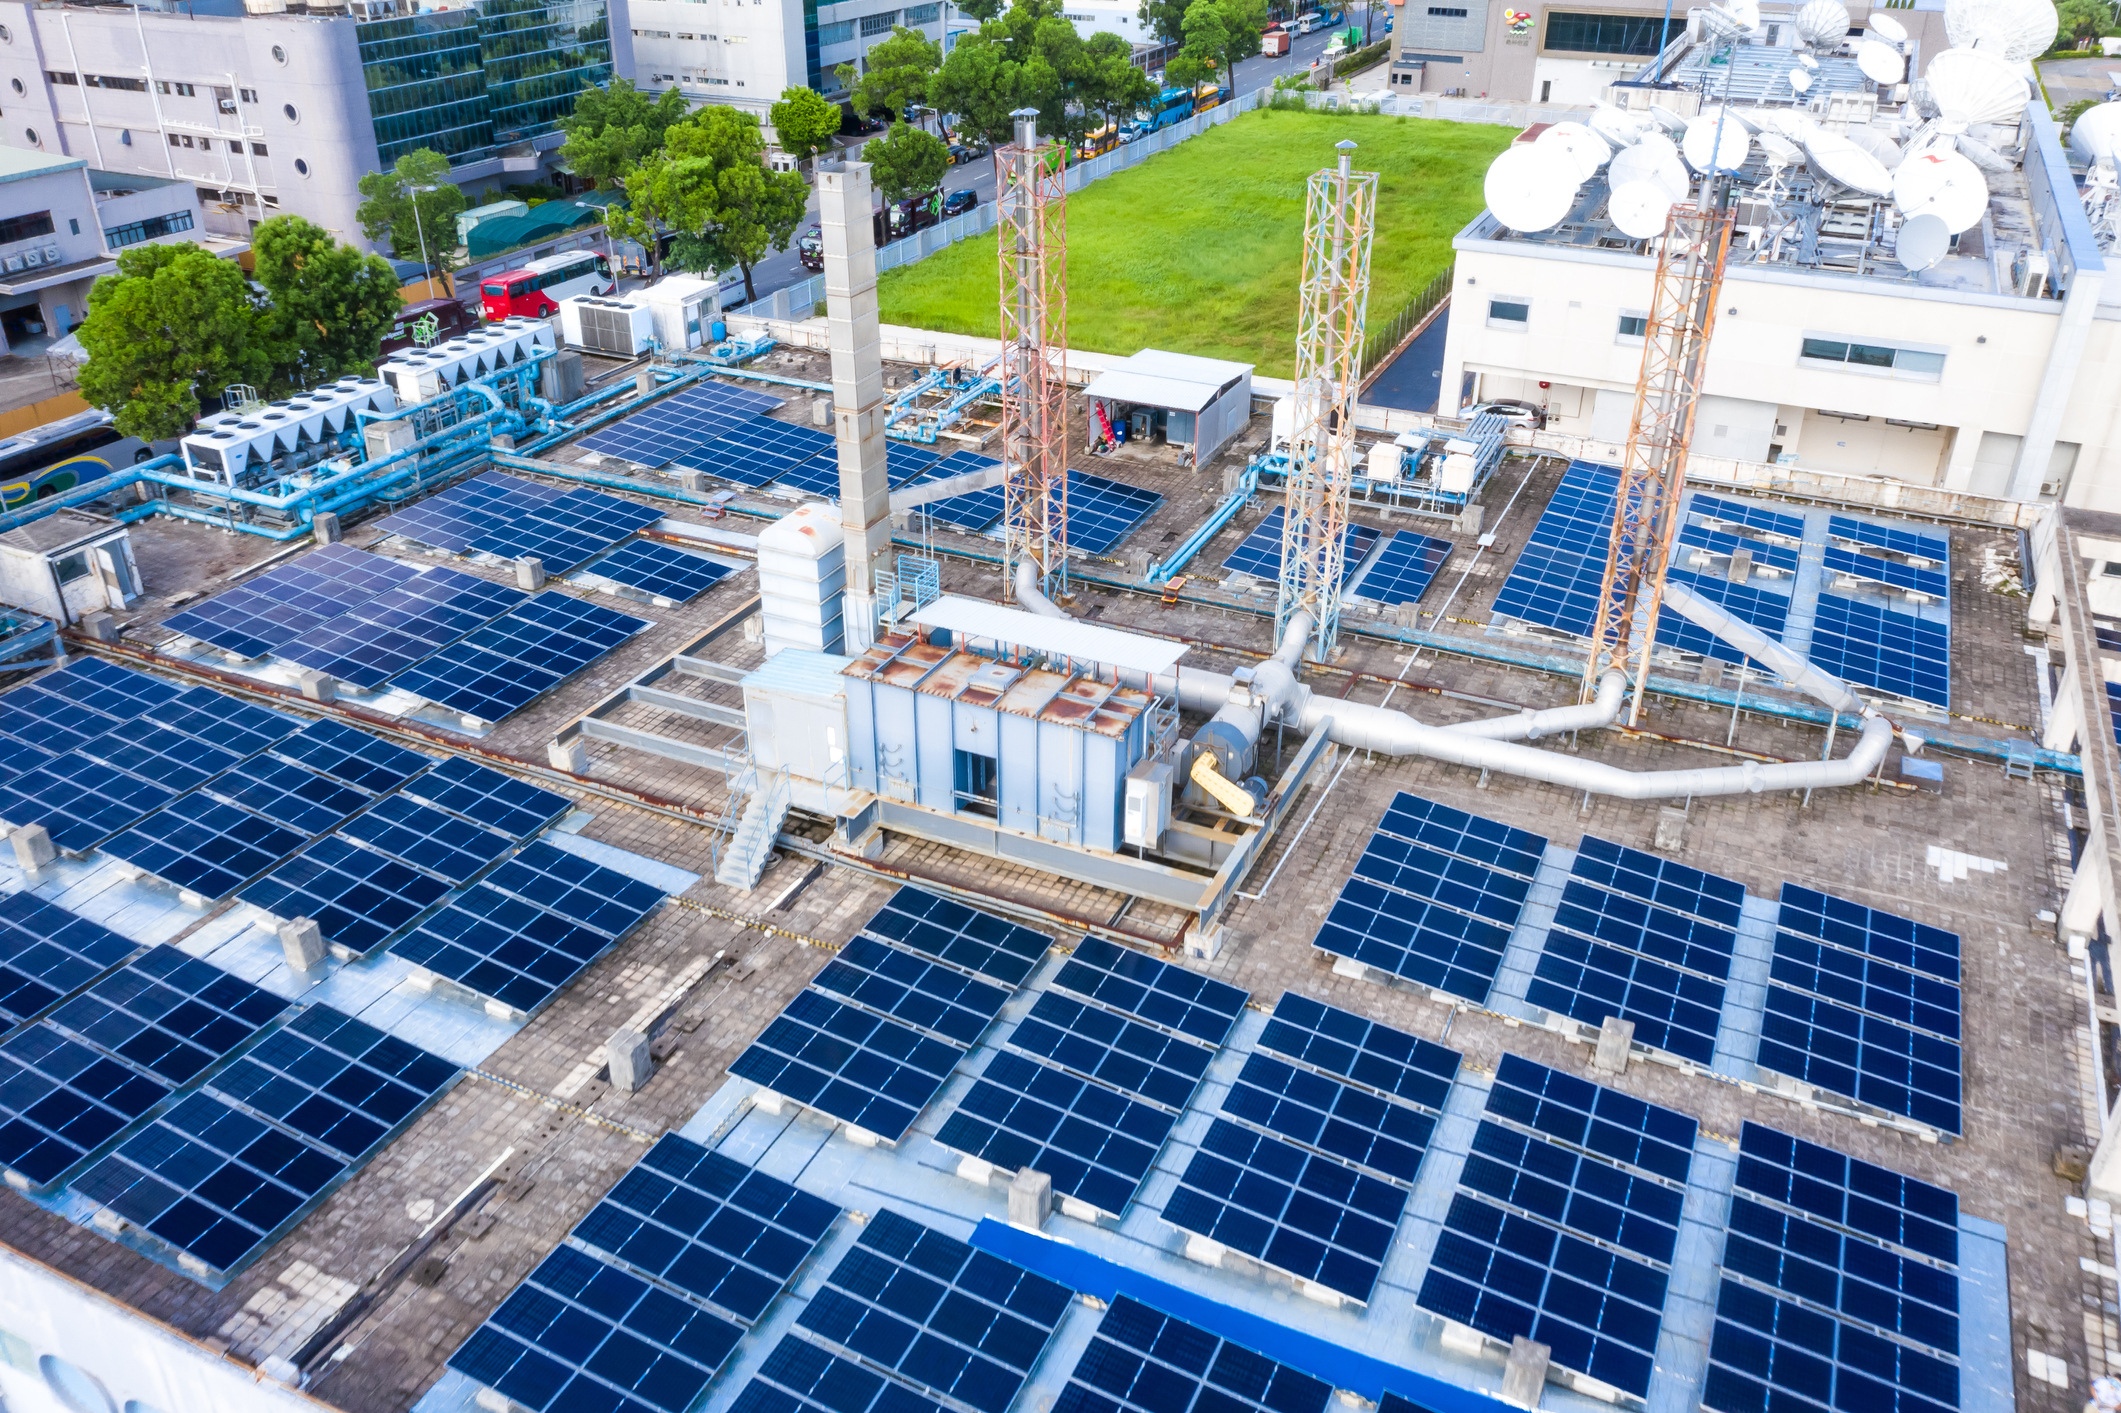 An areal shot of a warehouse rooftop utilizing solar panels for power